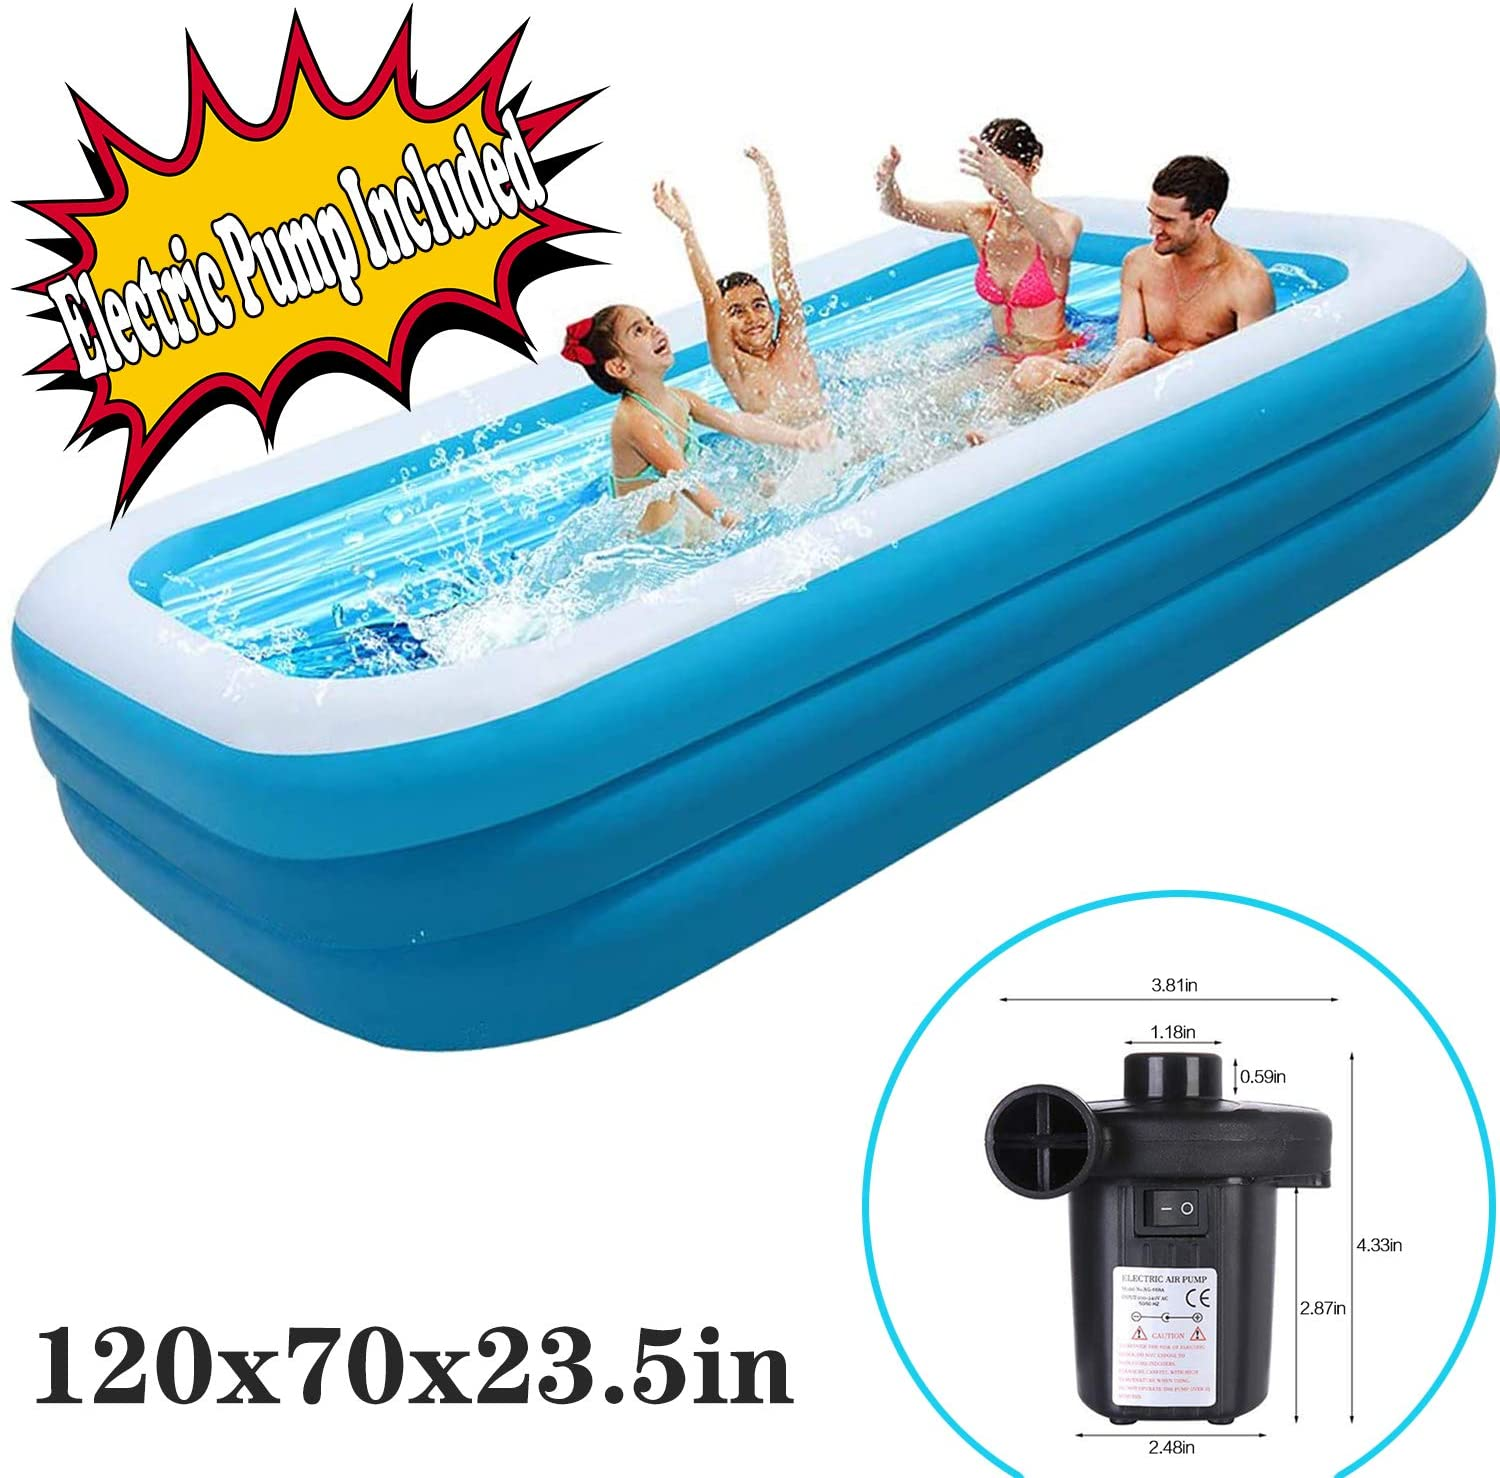 SwimmingPool AboveGround - Family Inflatable Swimming Pools 120x72x19.7in - Thickened Family Pool for Children Adults,Pvc Folding Durable Swim Center Inflatable Pool Bath Tubs Electric Pump/Included